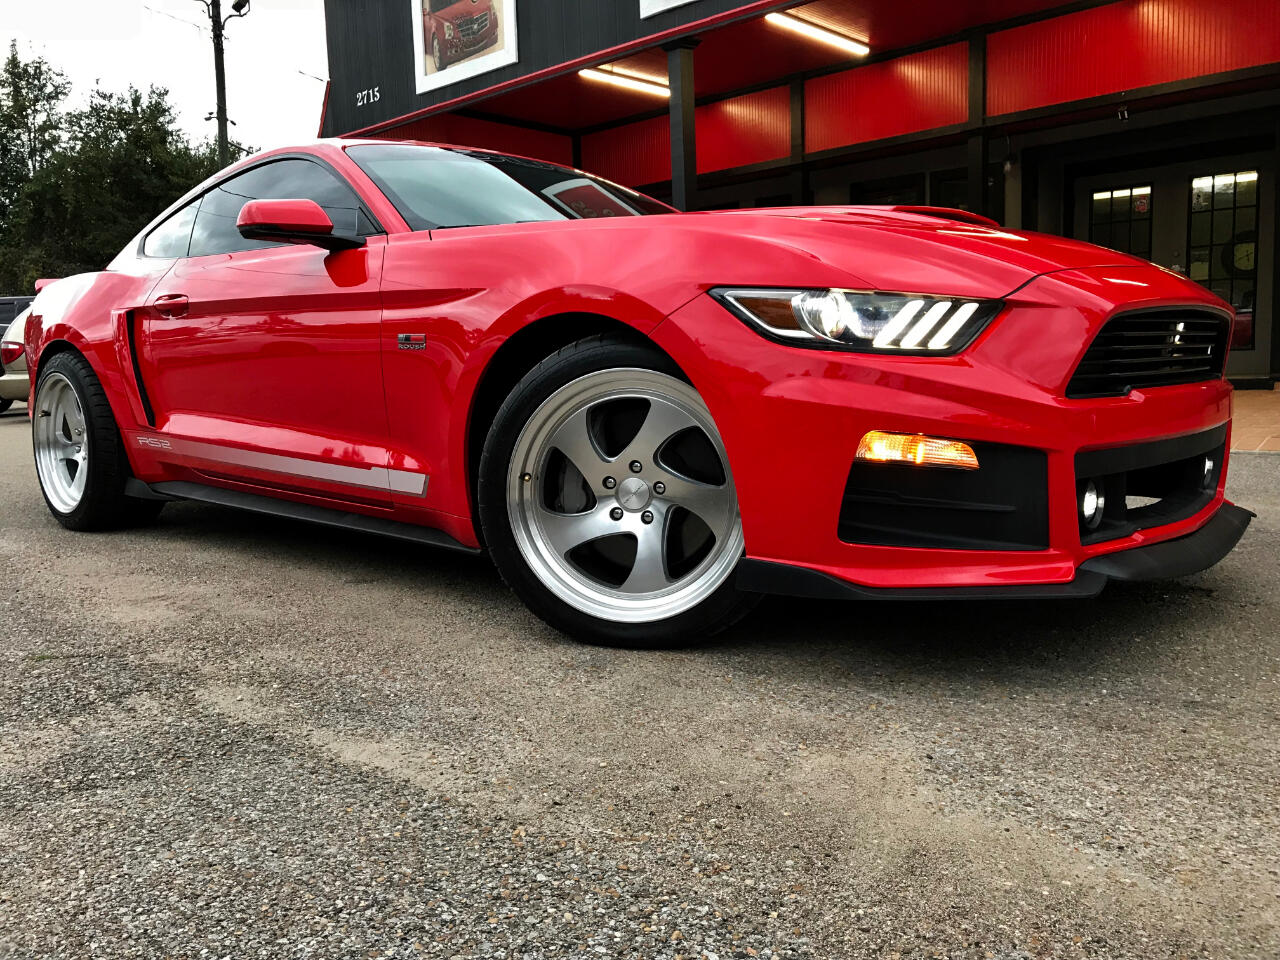 2016 Ford Mustang ROUSH STAGE 2 PACKAGE